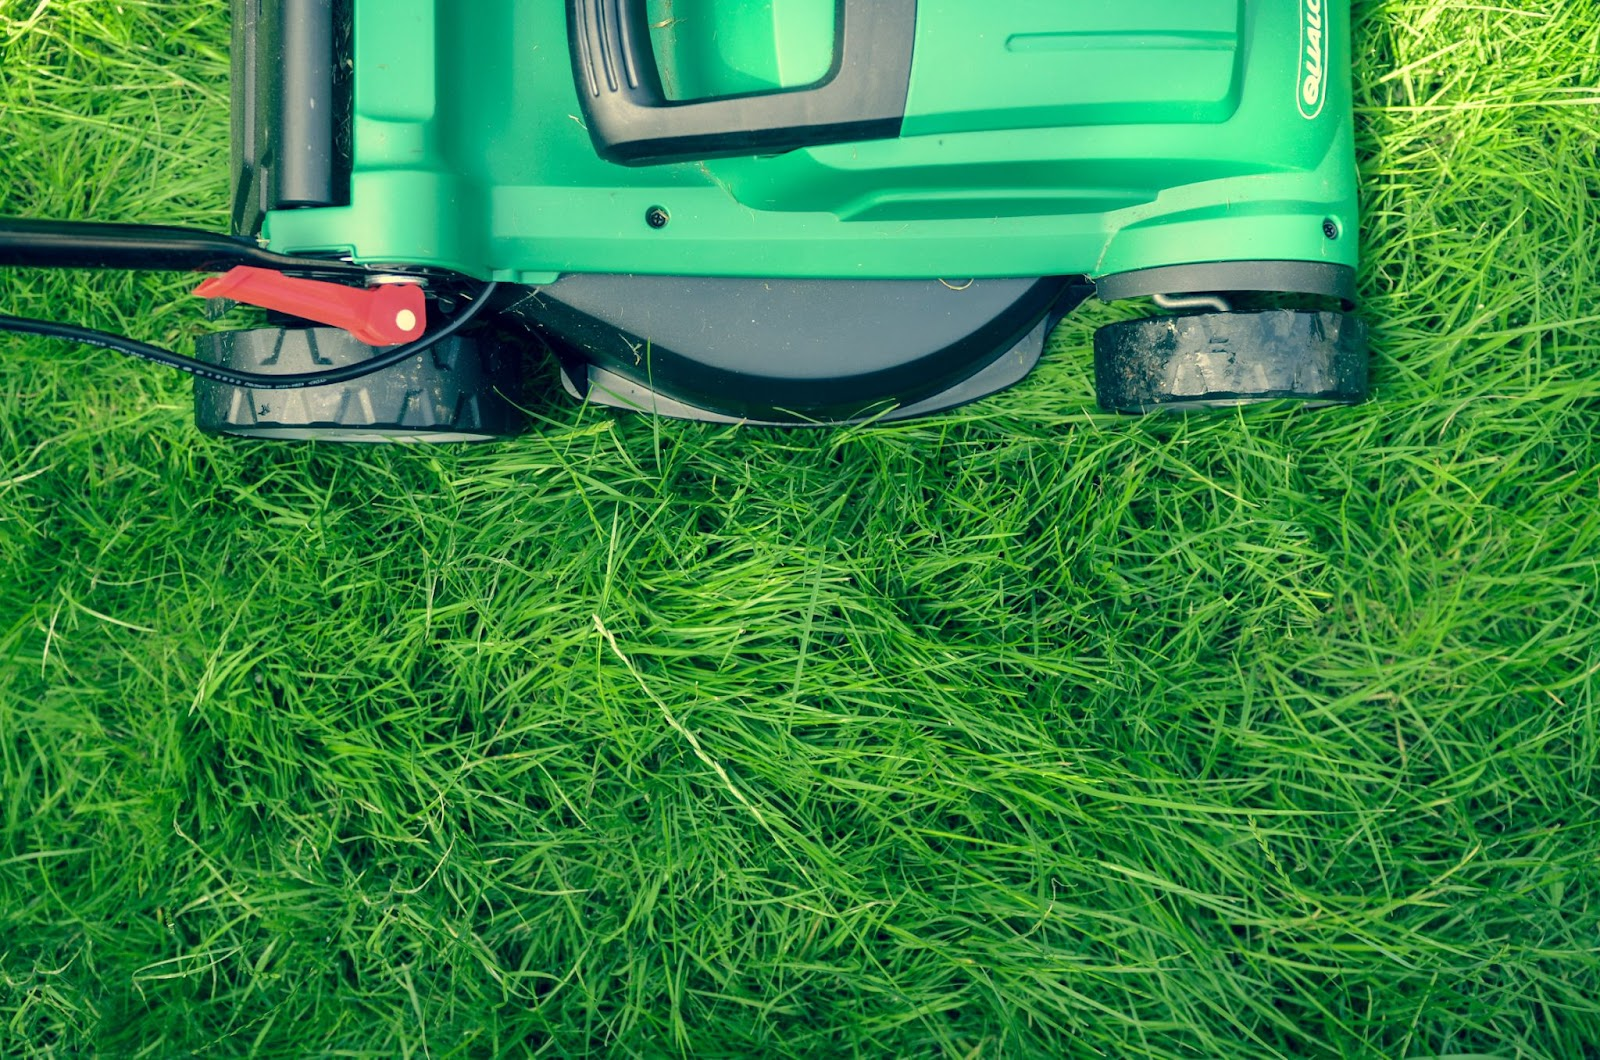 Minneapolis landscaping lawn care tips summer heat